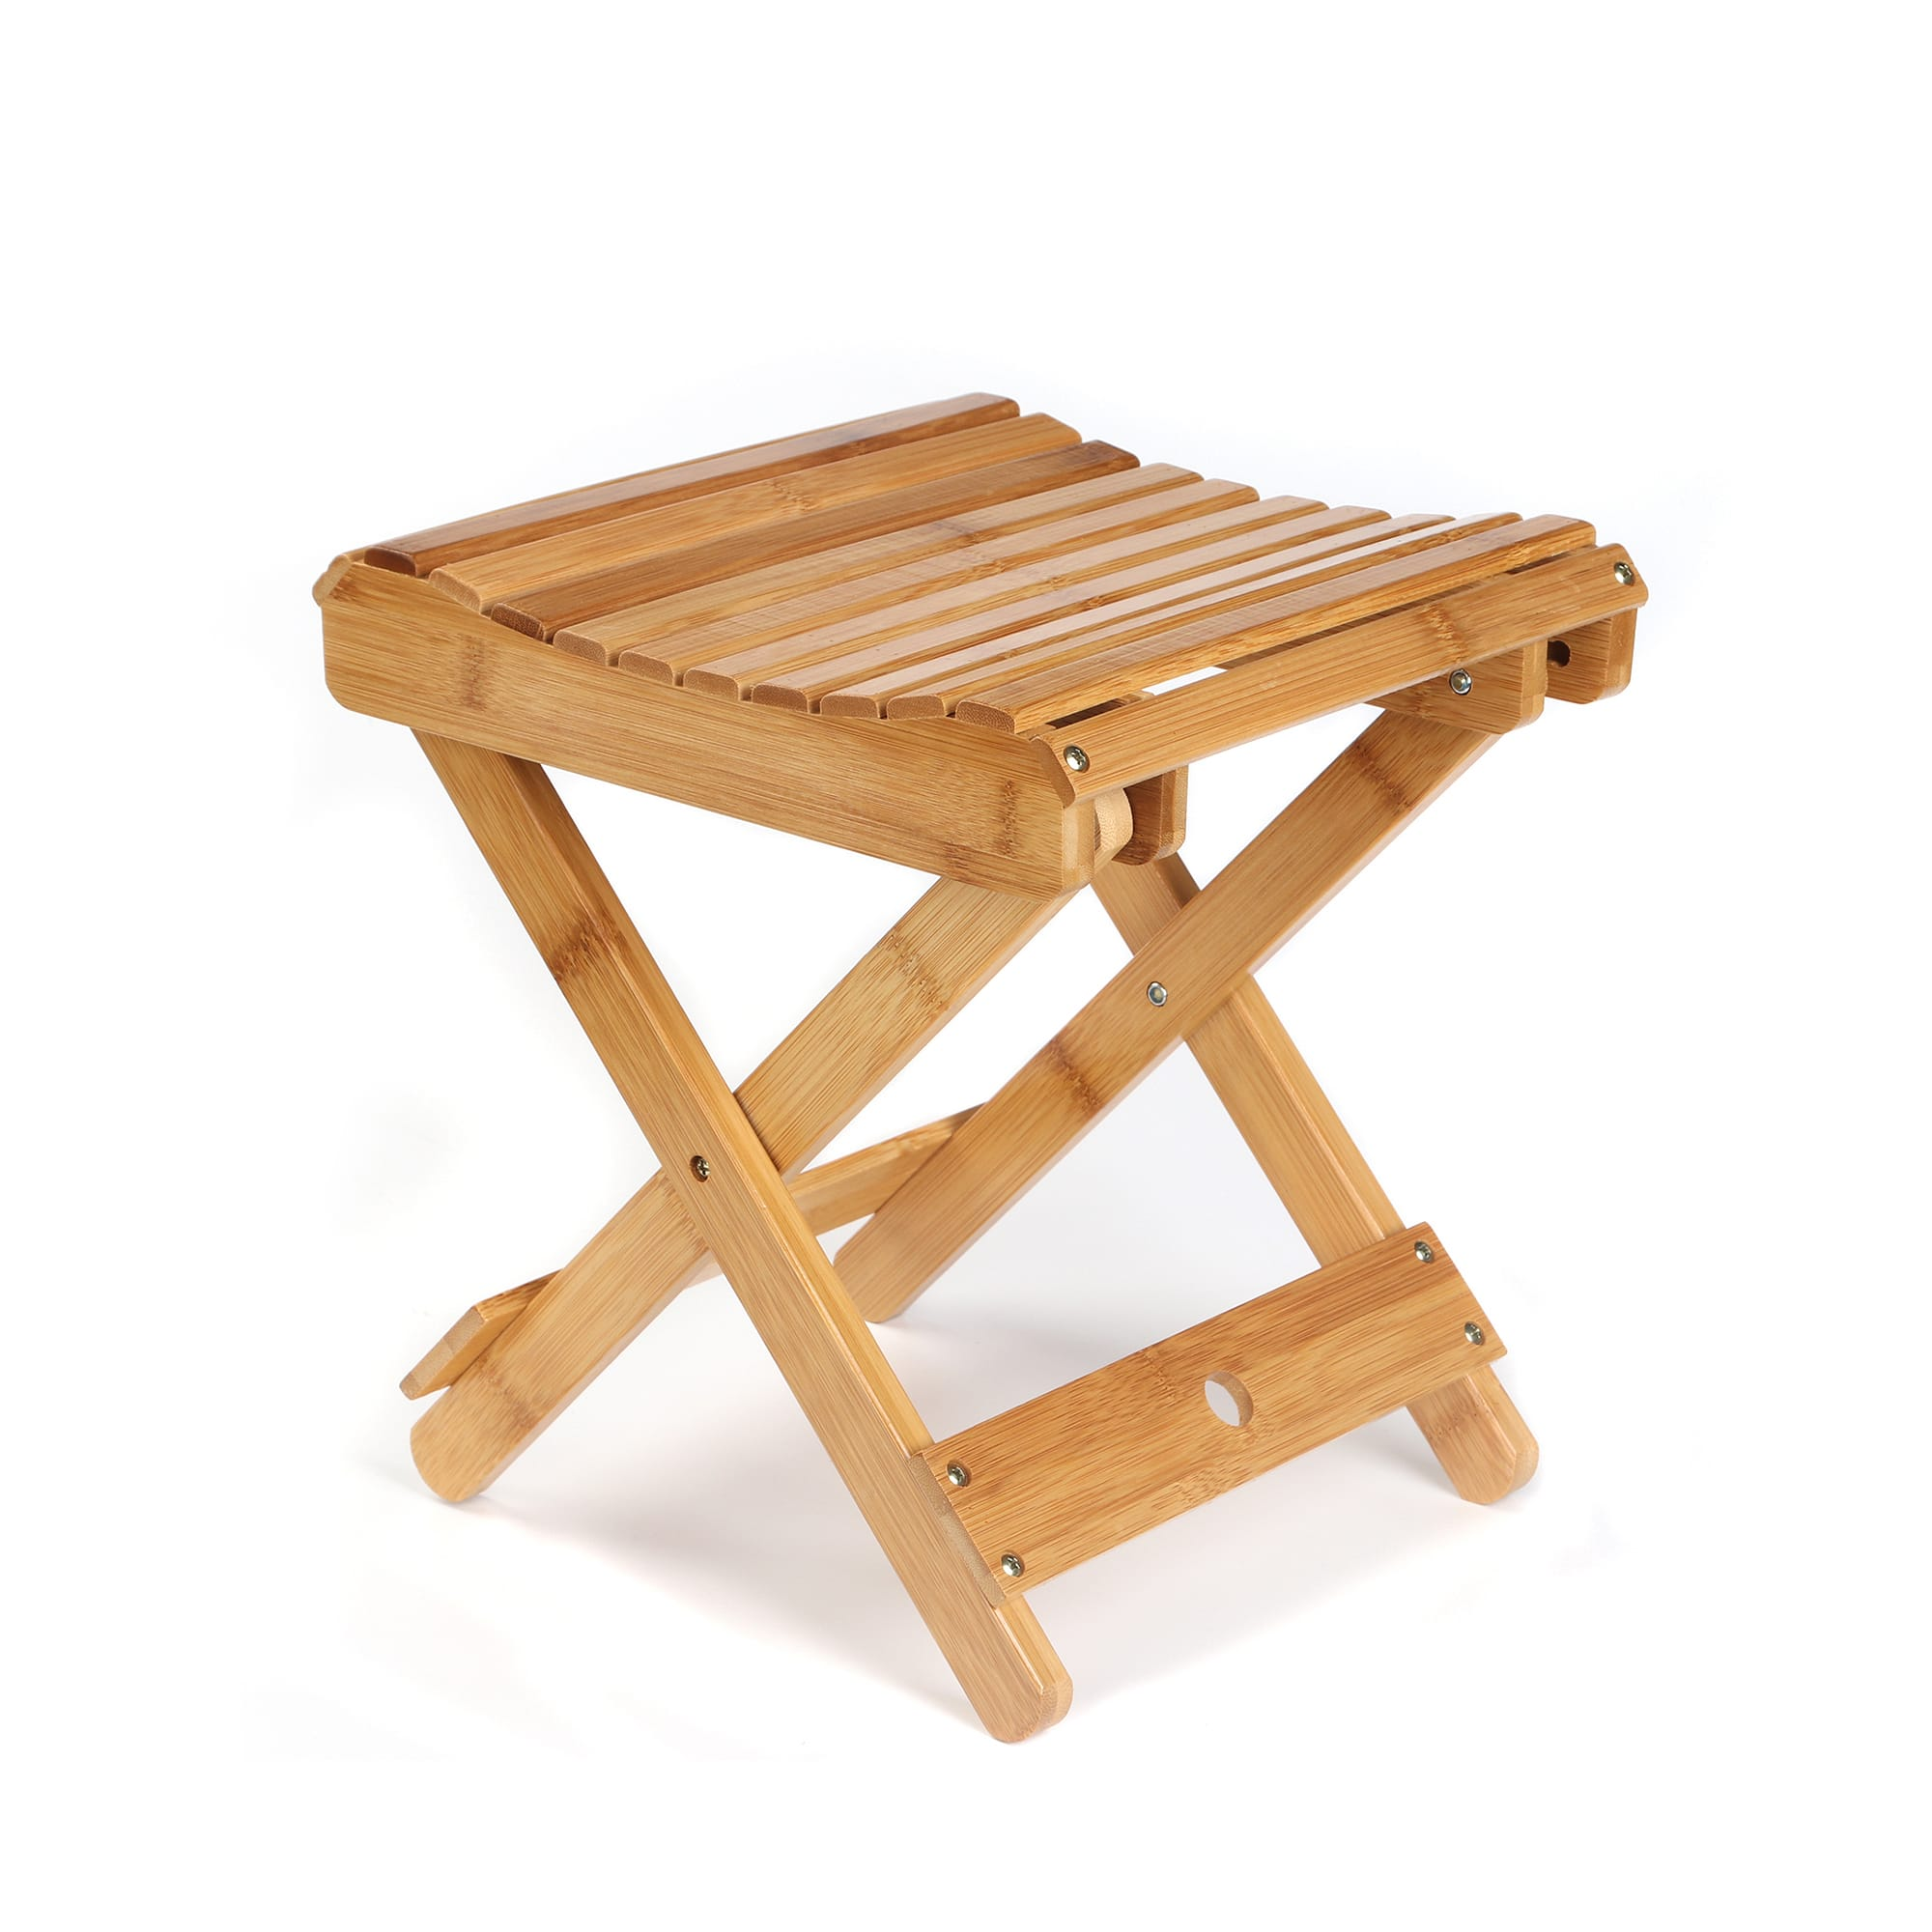 "ETECHMART 12"" Eco-friendly Bamboo Folding Stool for Shower on sale for $29.66"